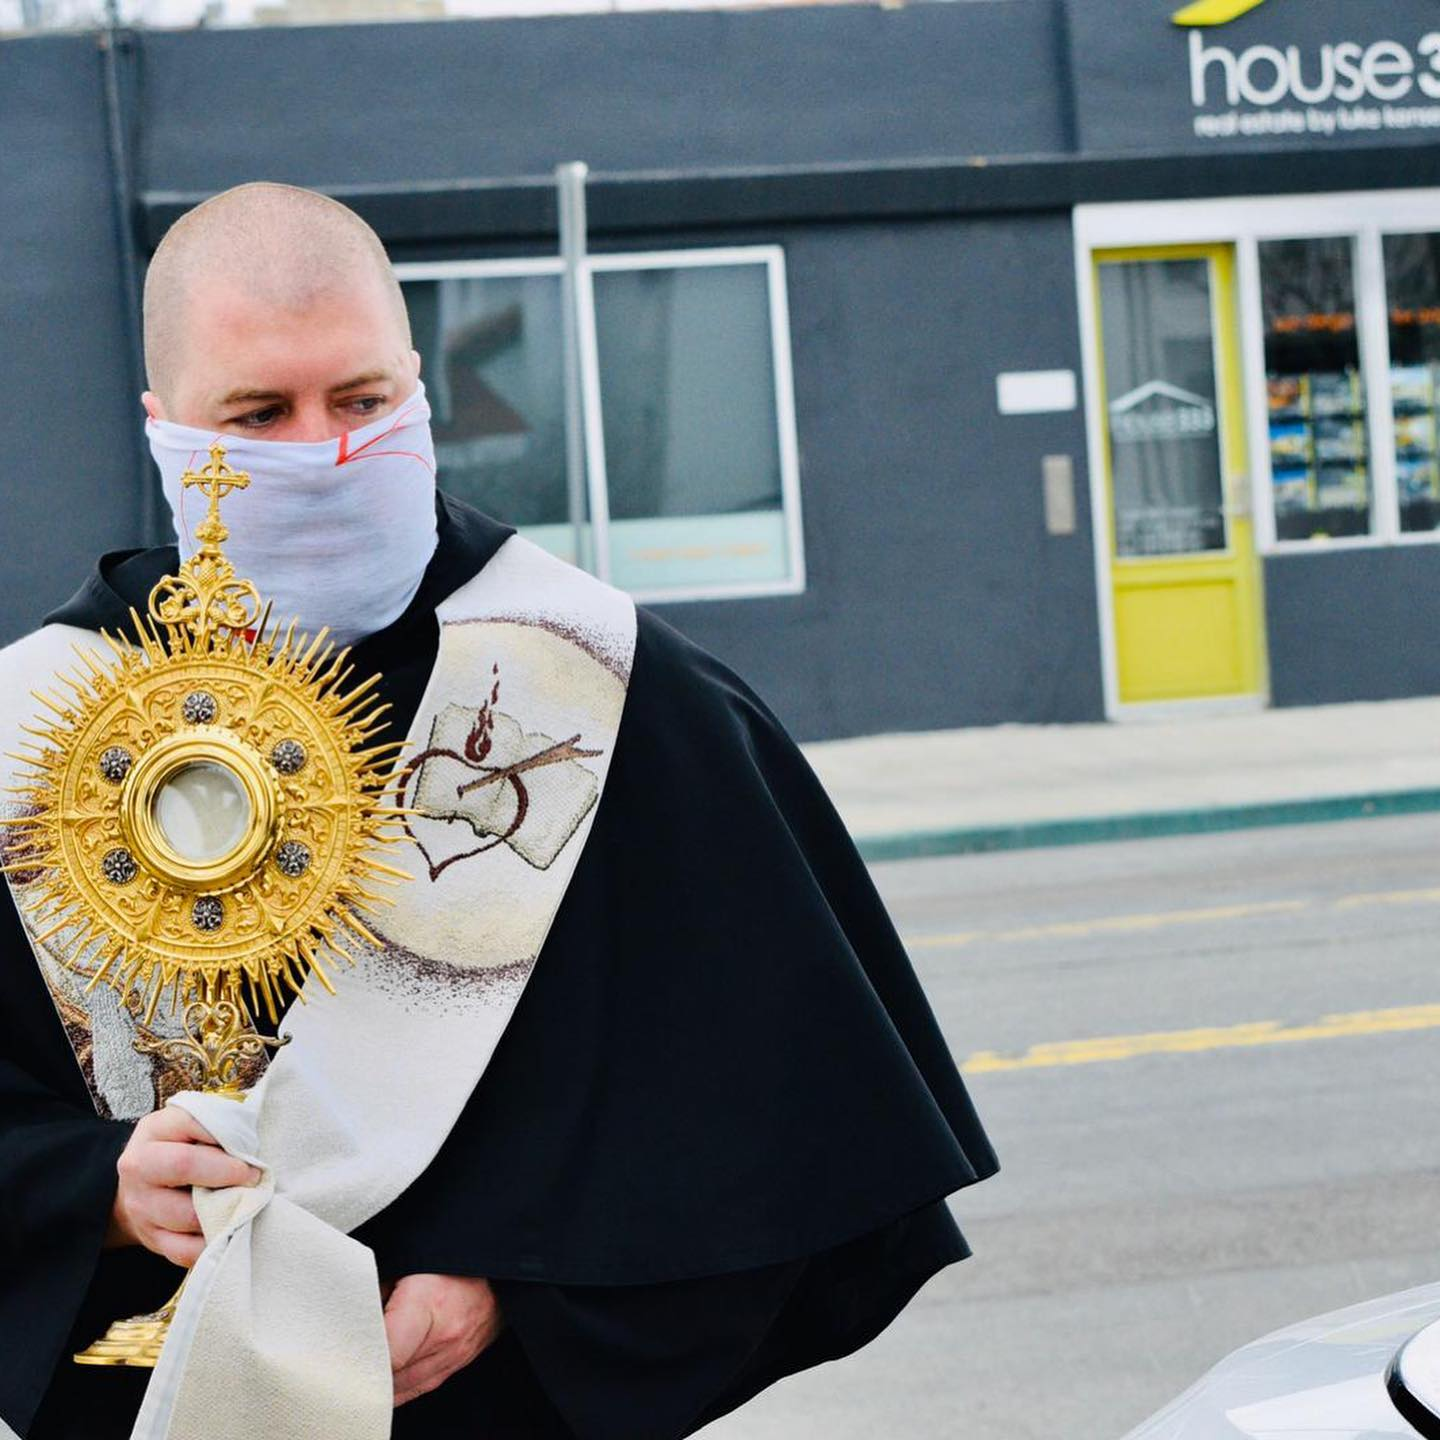 Fr Max holds the Blessed Sacrament